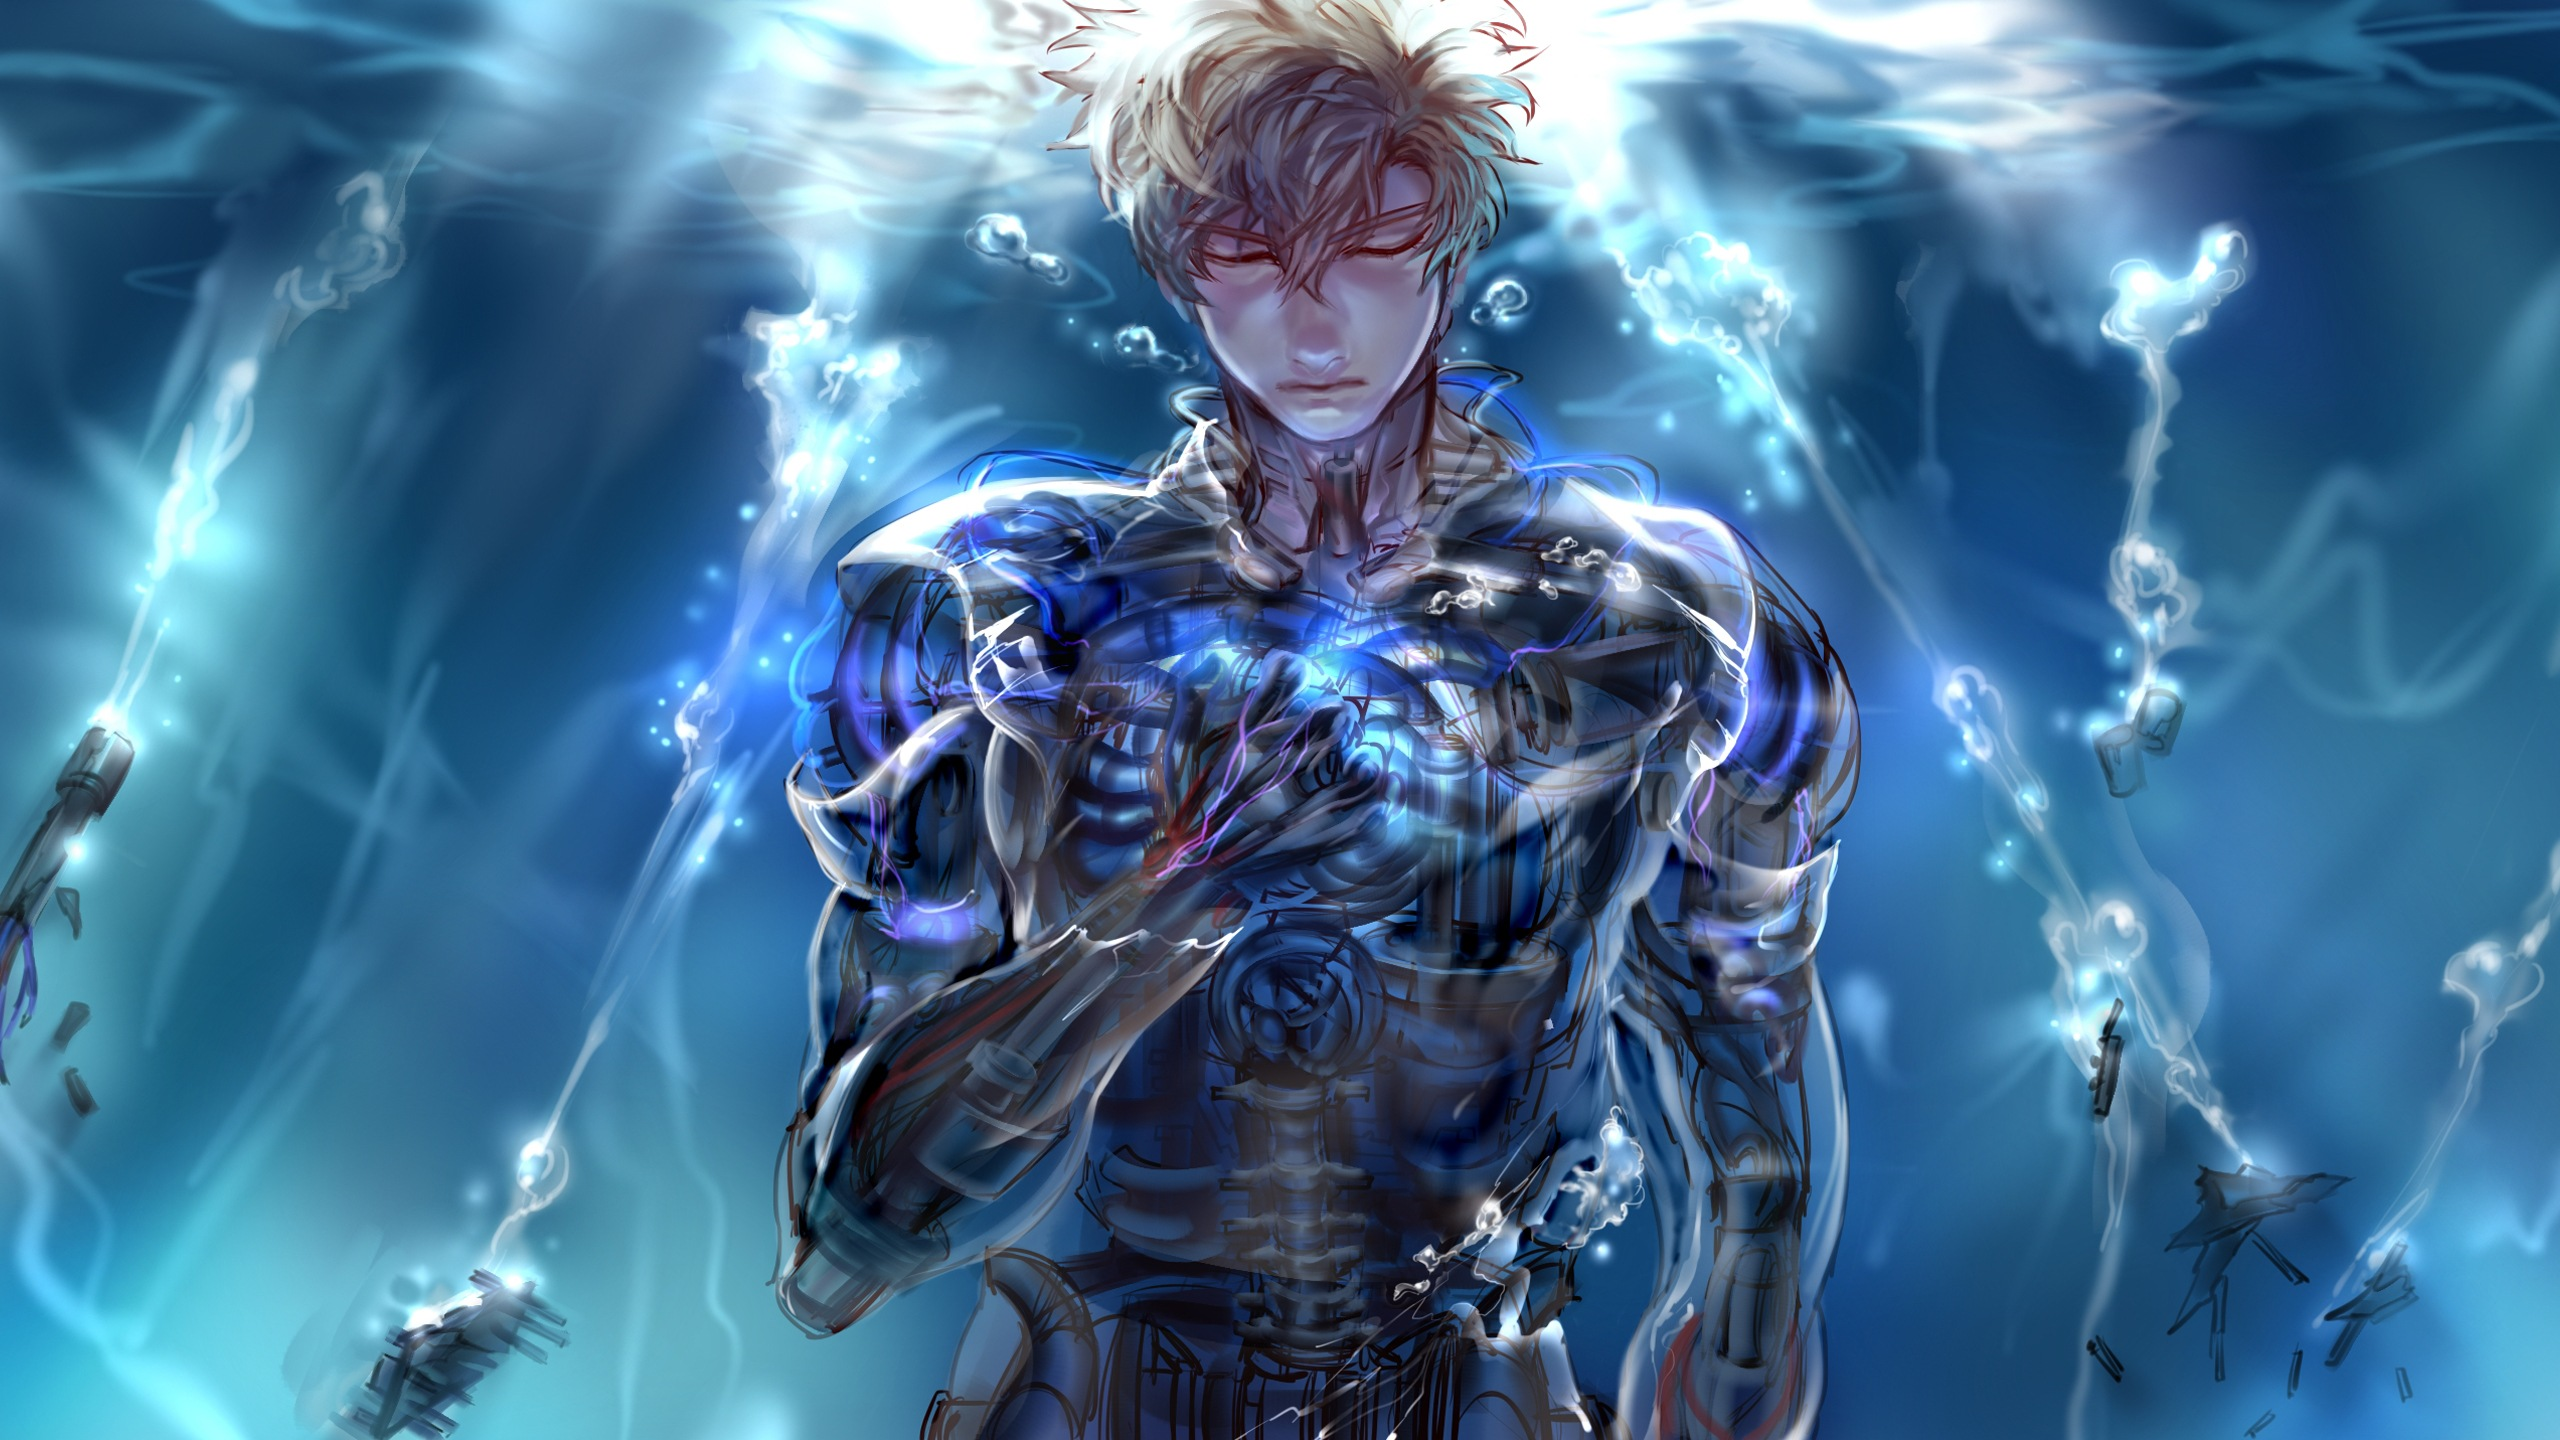 150 Genos E Punch Man HD Wallpapers